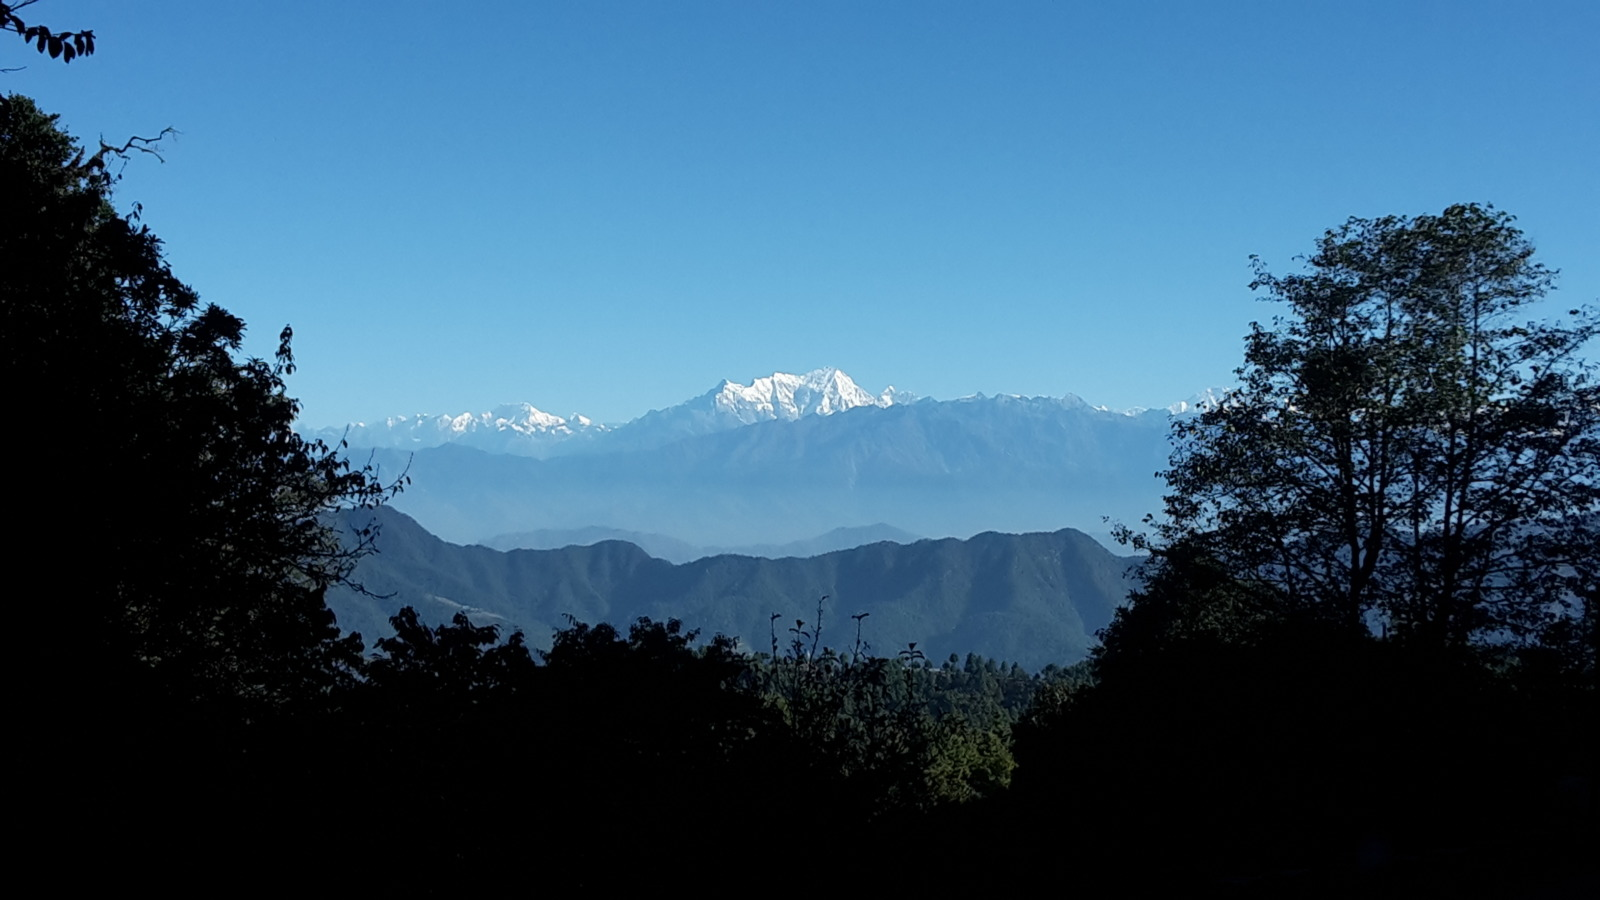 Just stunning views on the Tribhuvan Highway.